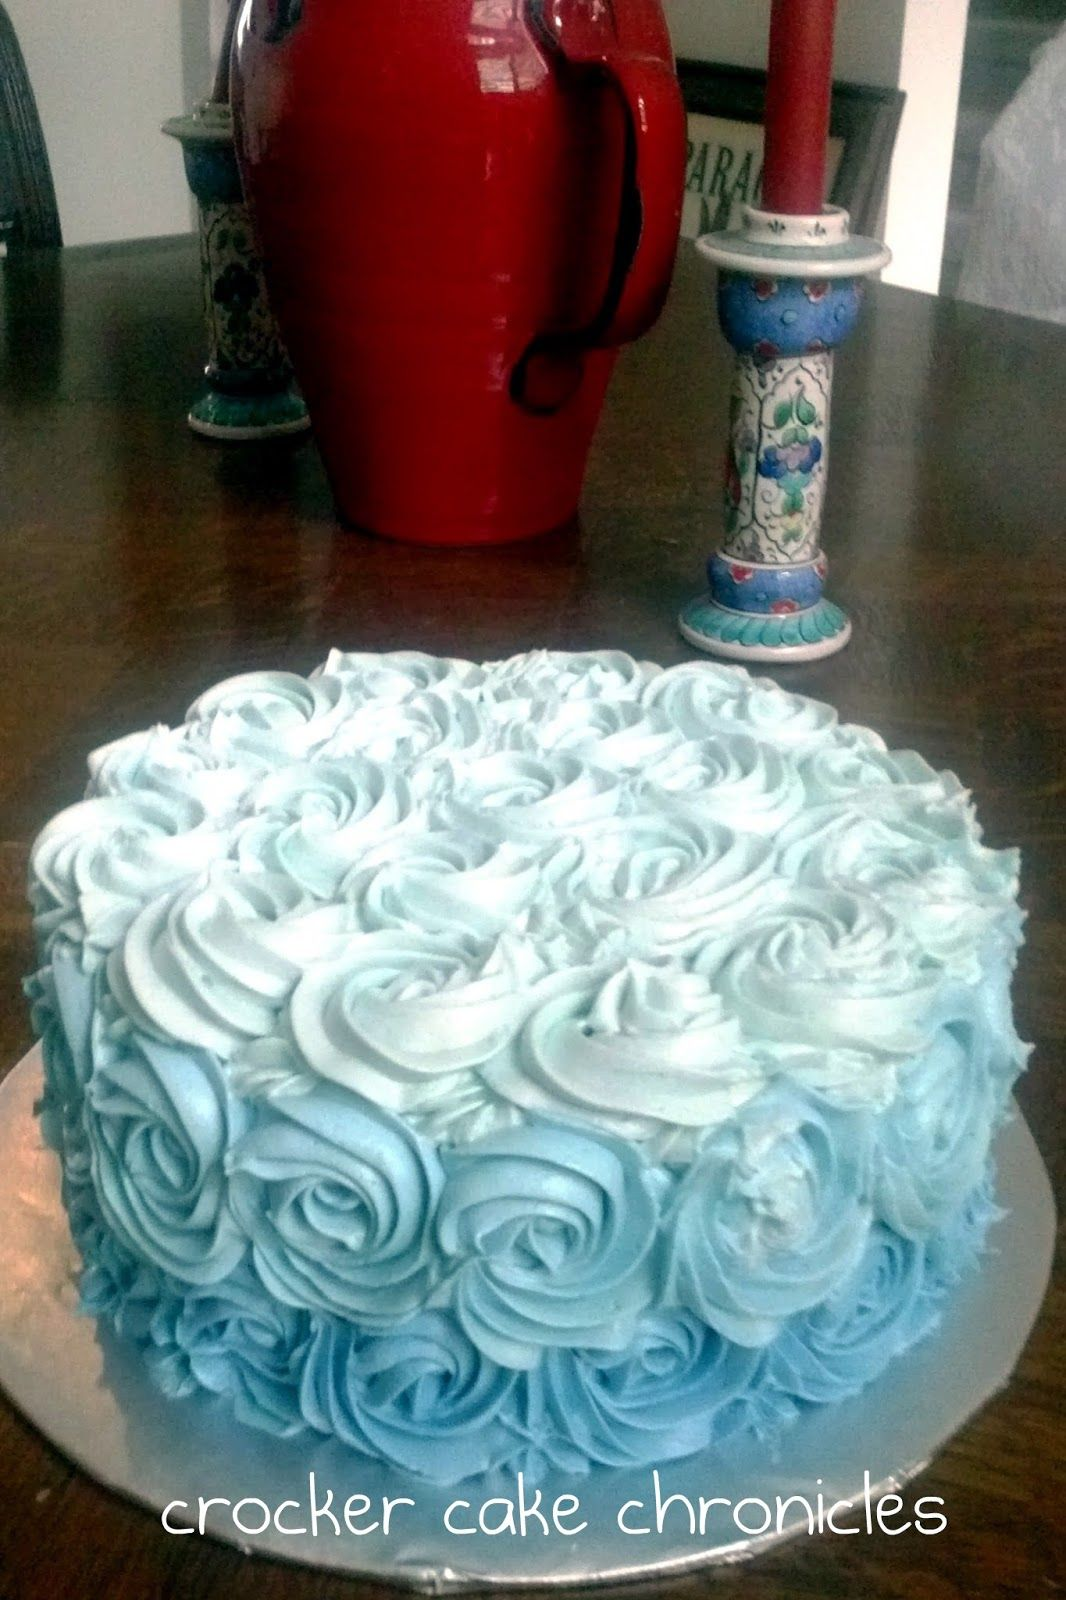 Crocker Cake Chronicles Ombre Rose Cake and Whipped Cream Frosting